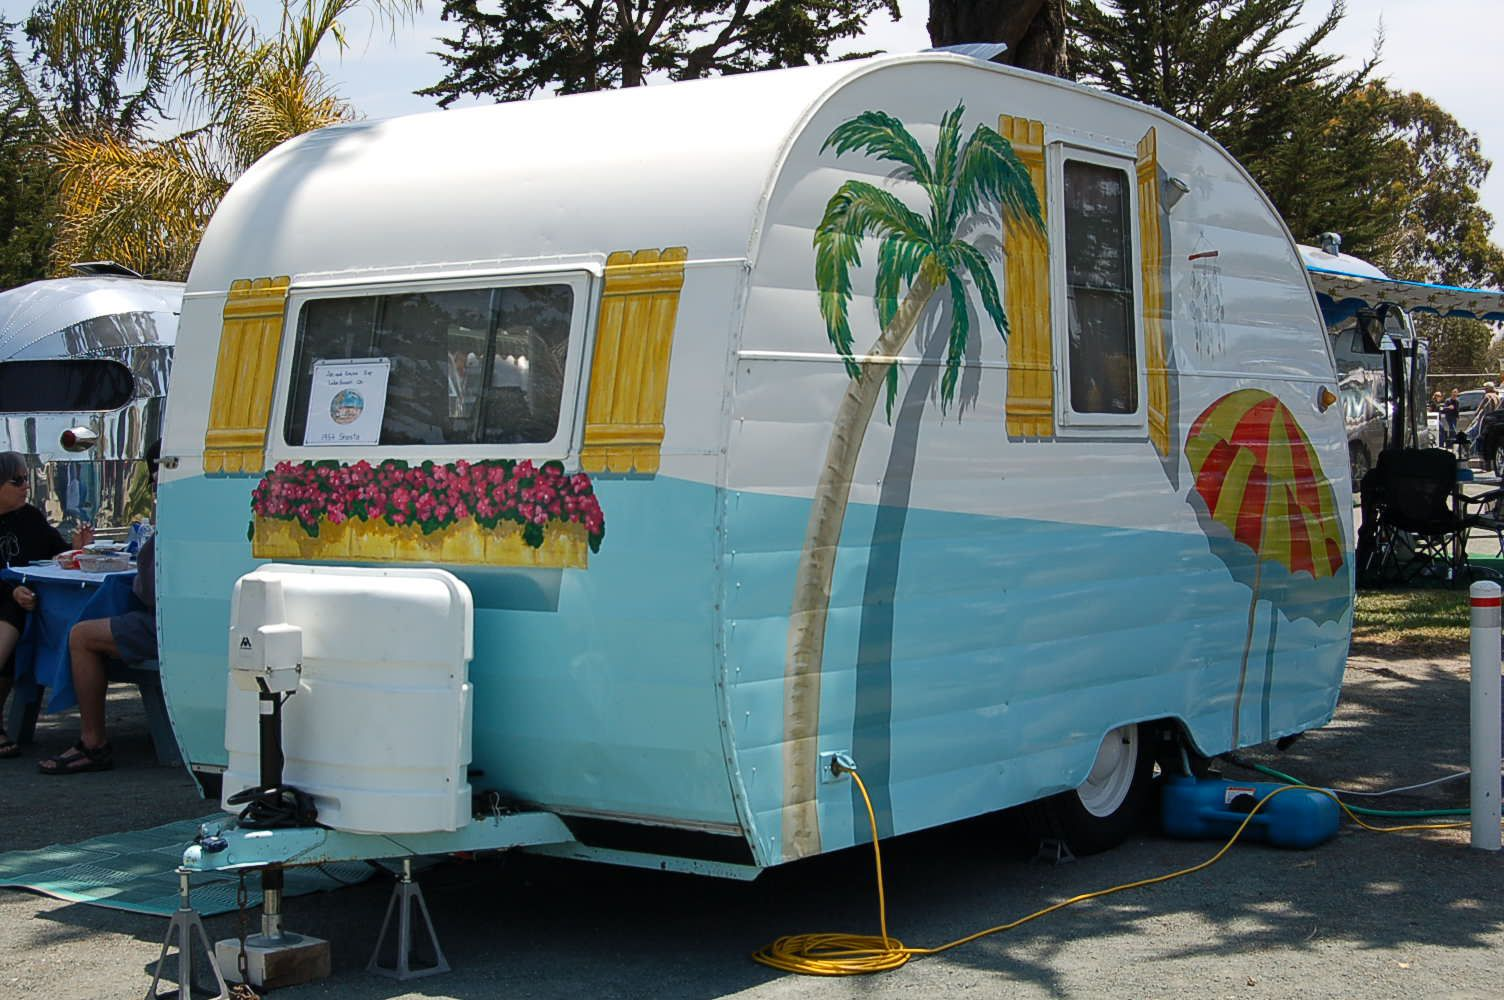 1954 Two-Story Vintage Travel Trailer For Sale